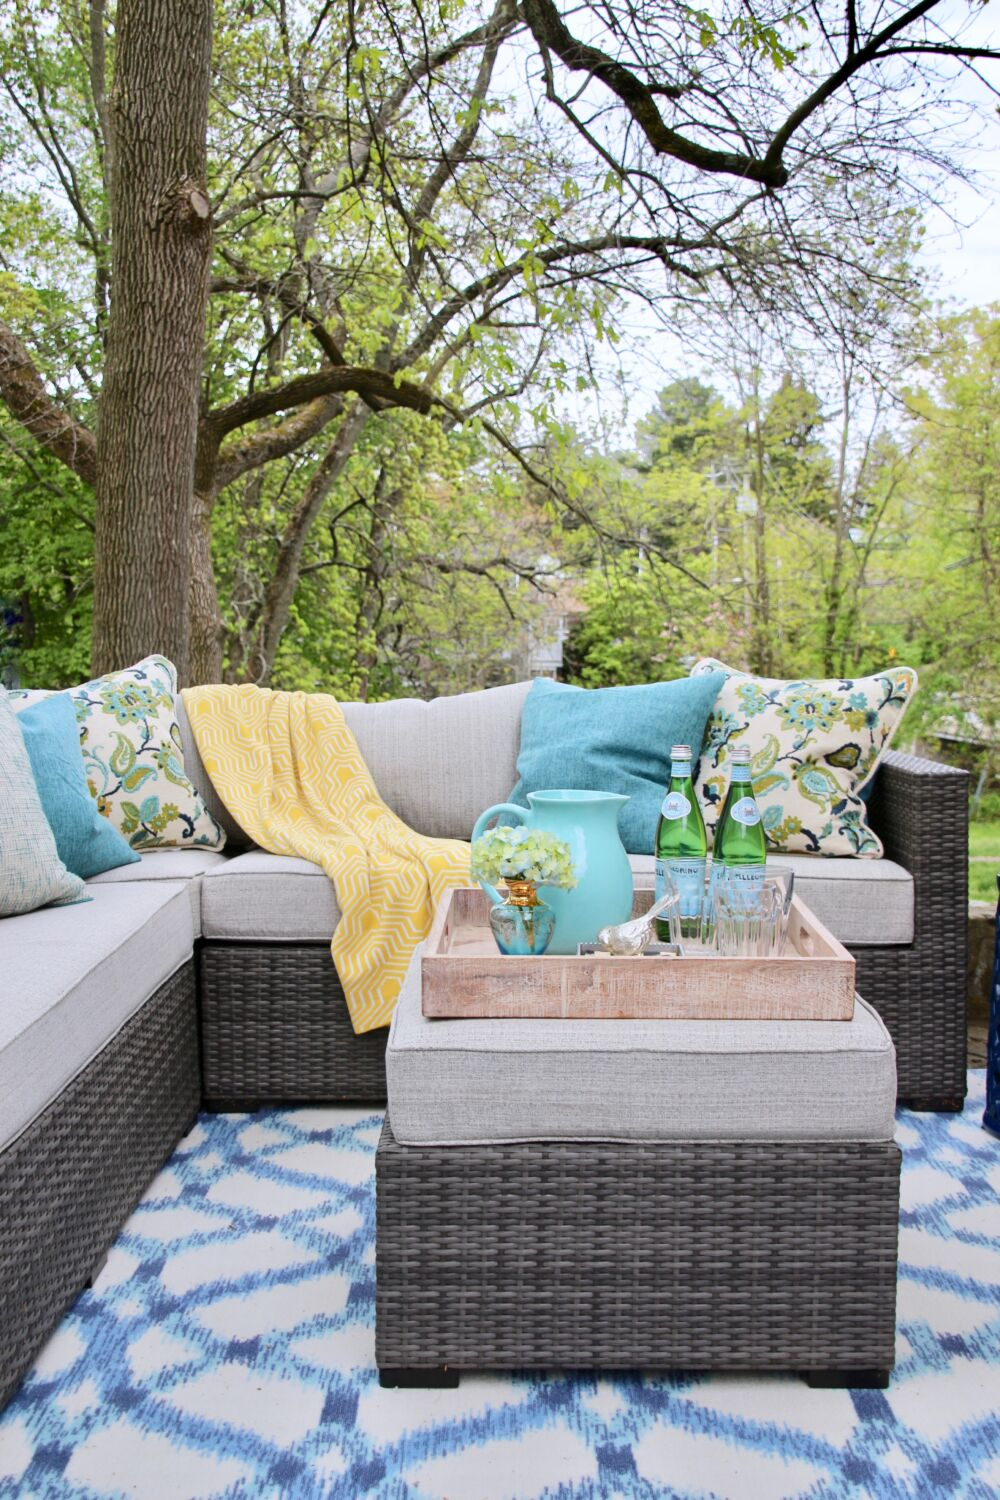 Creating A Chic Colorful And Cozy Outdoor Living Room In A